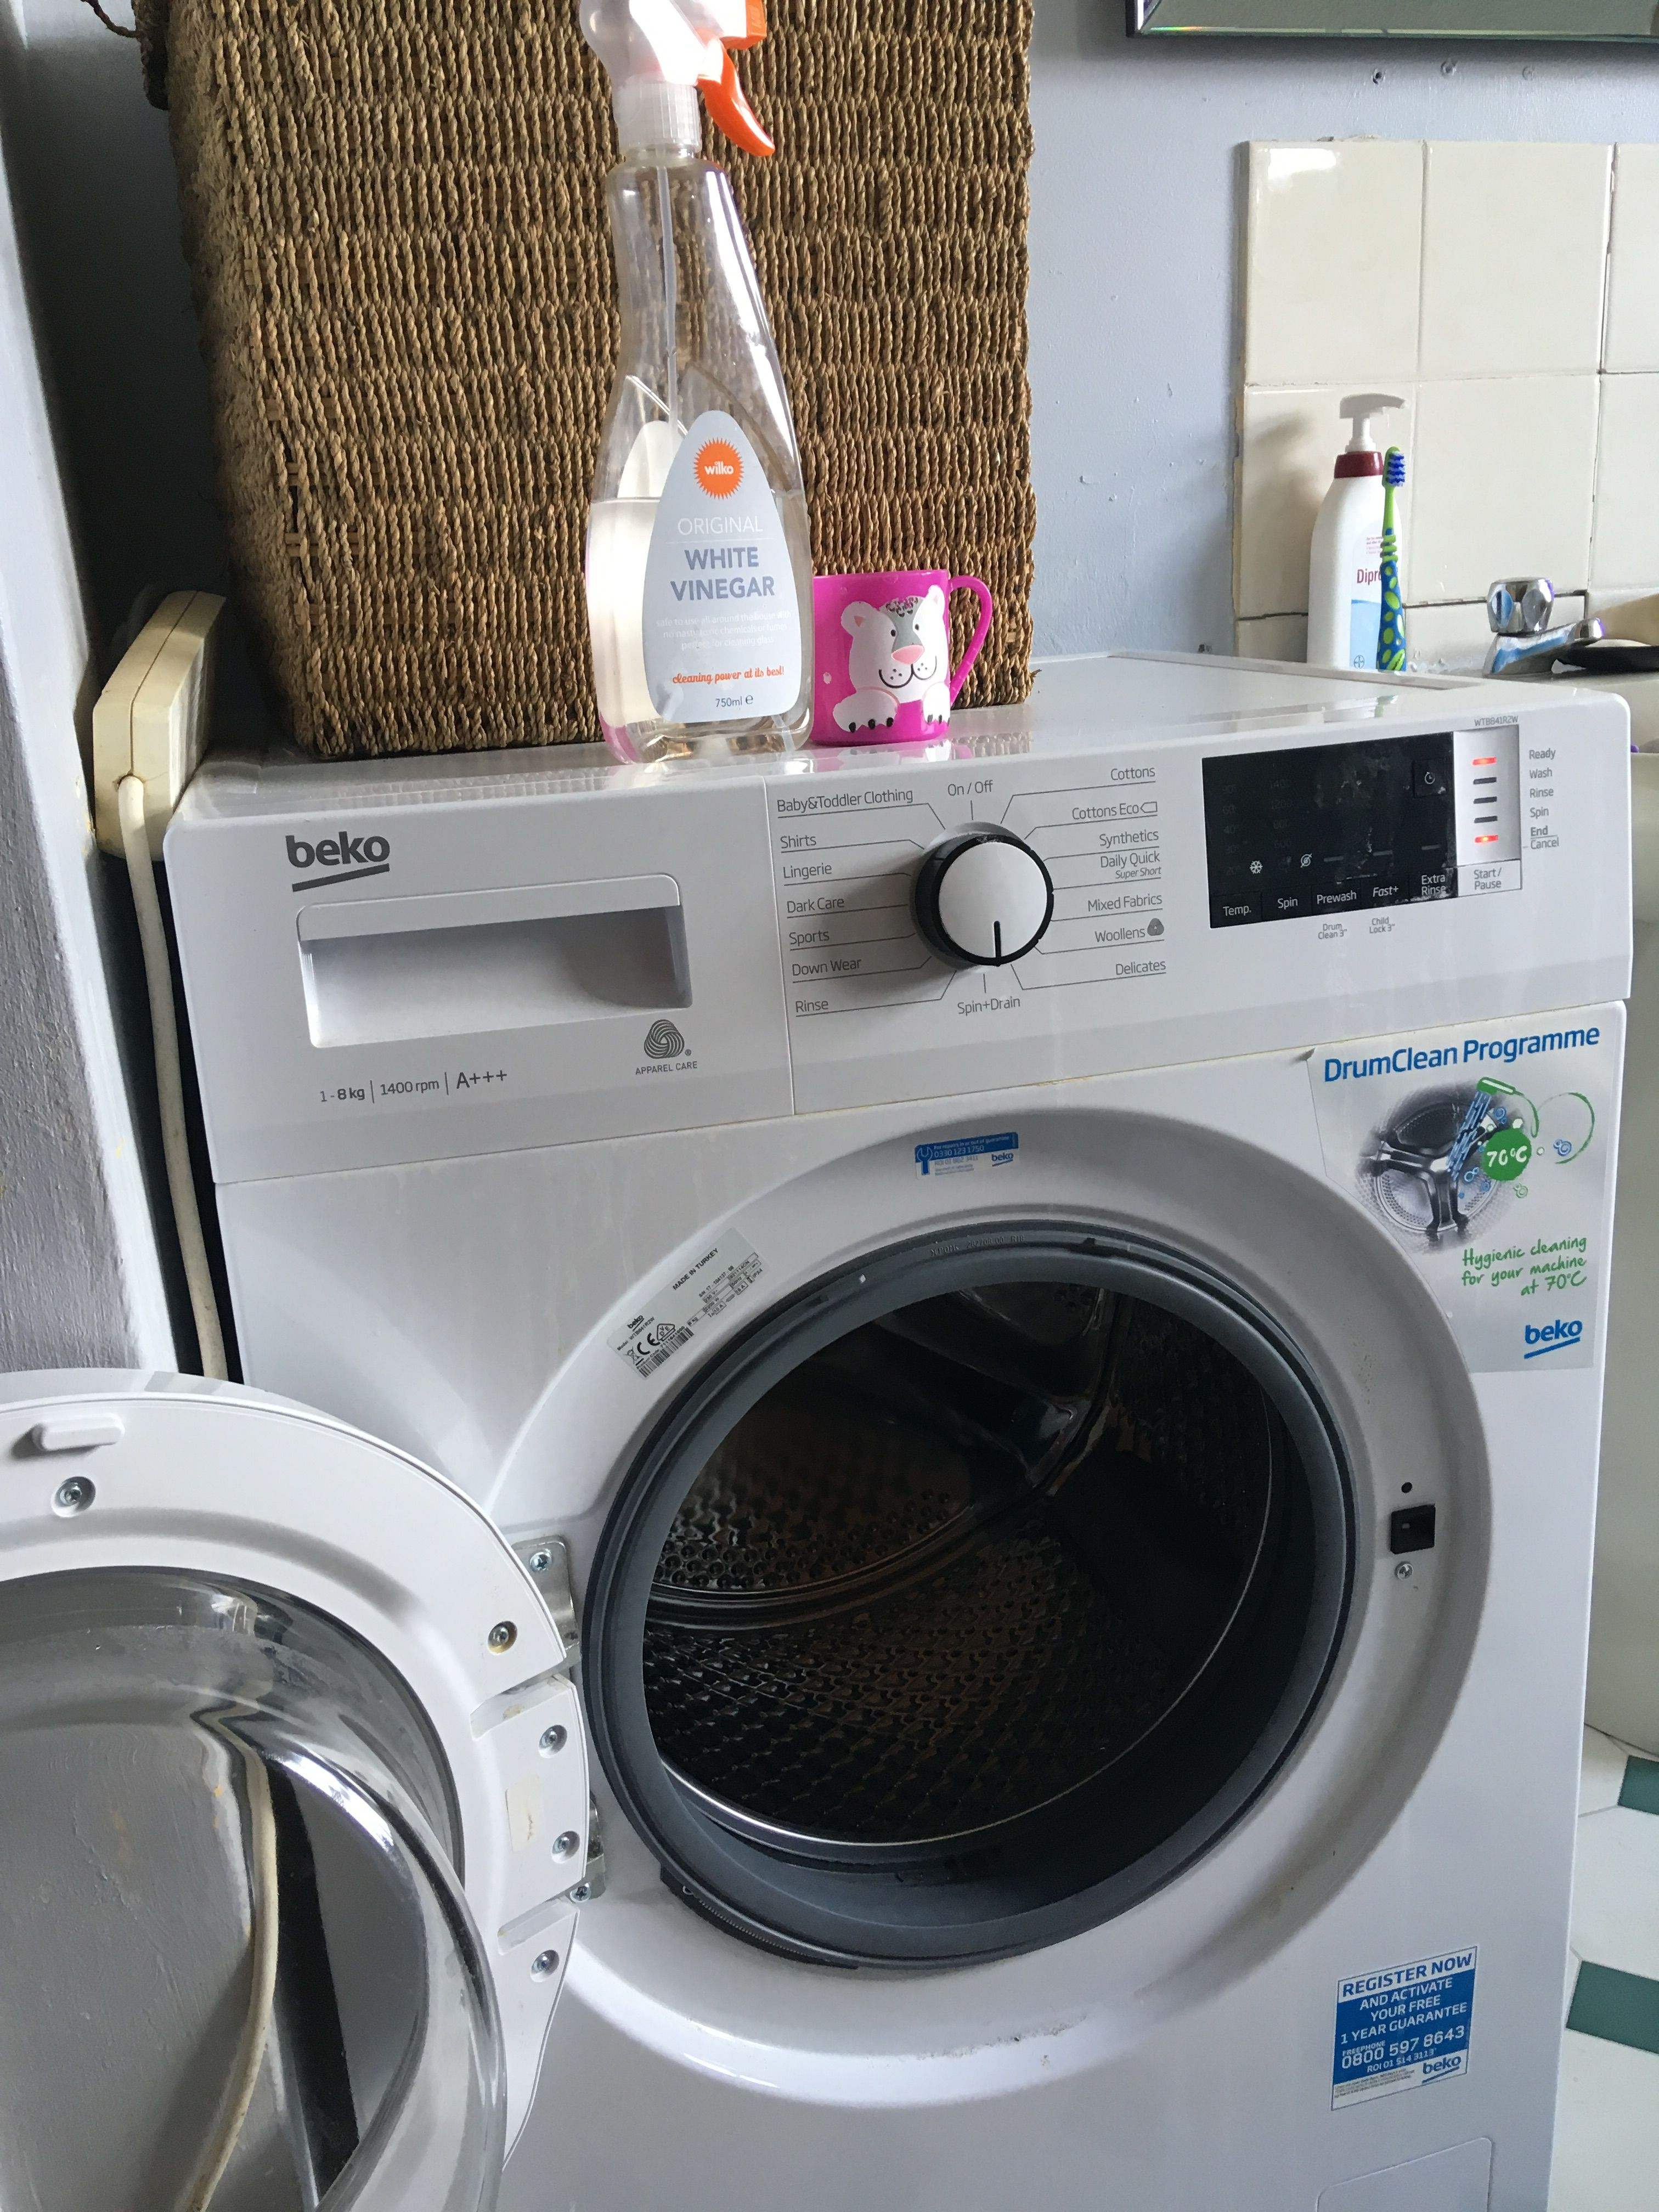 Cleaning The Washing Machine With Bicarb And White Vinegar Natural Cleaning Products Clean Washing Machine Household Hacks